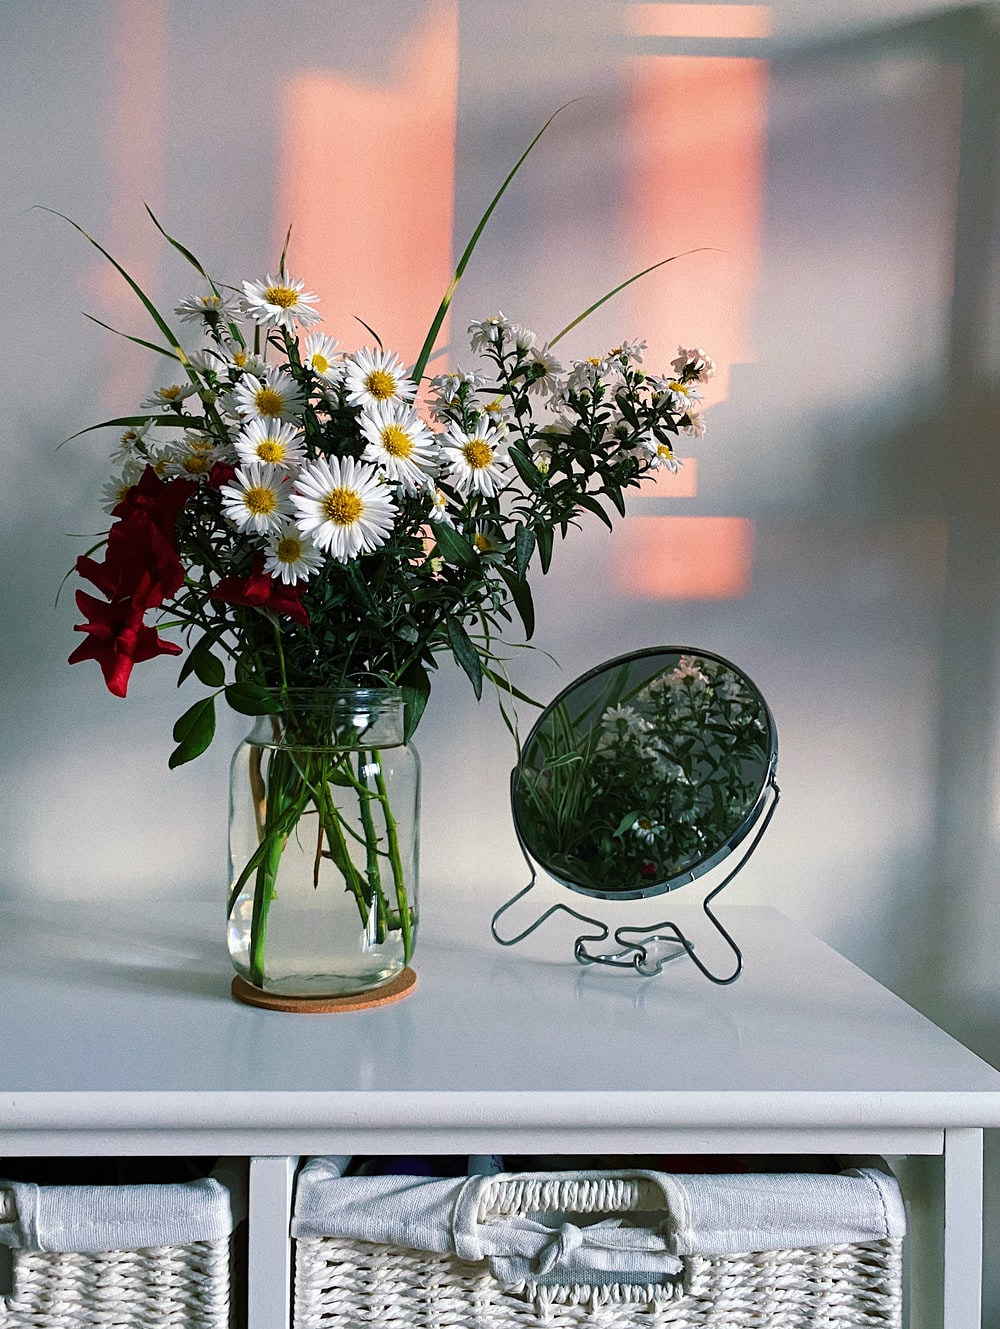 white and red flowers in clear glass vase